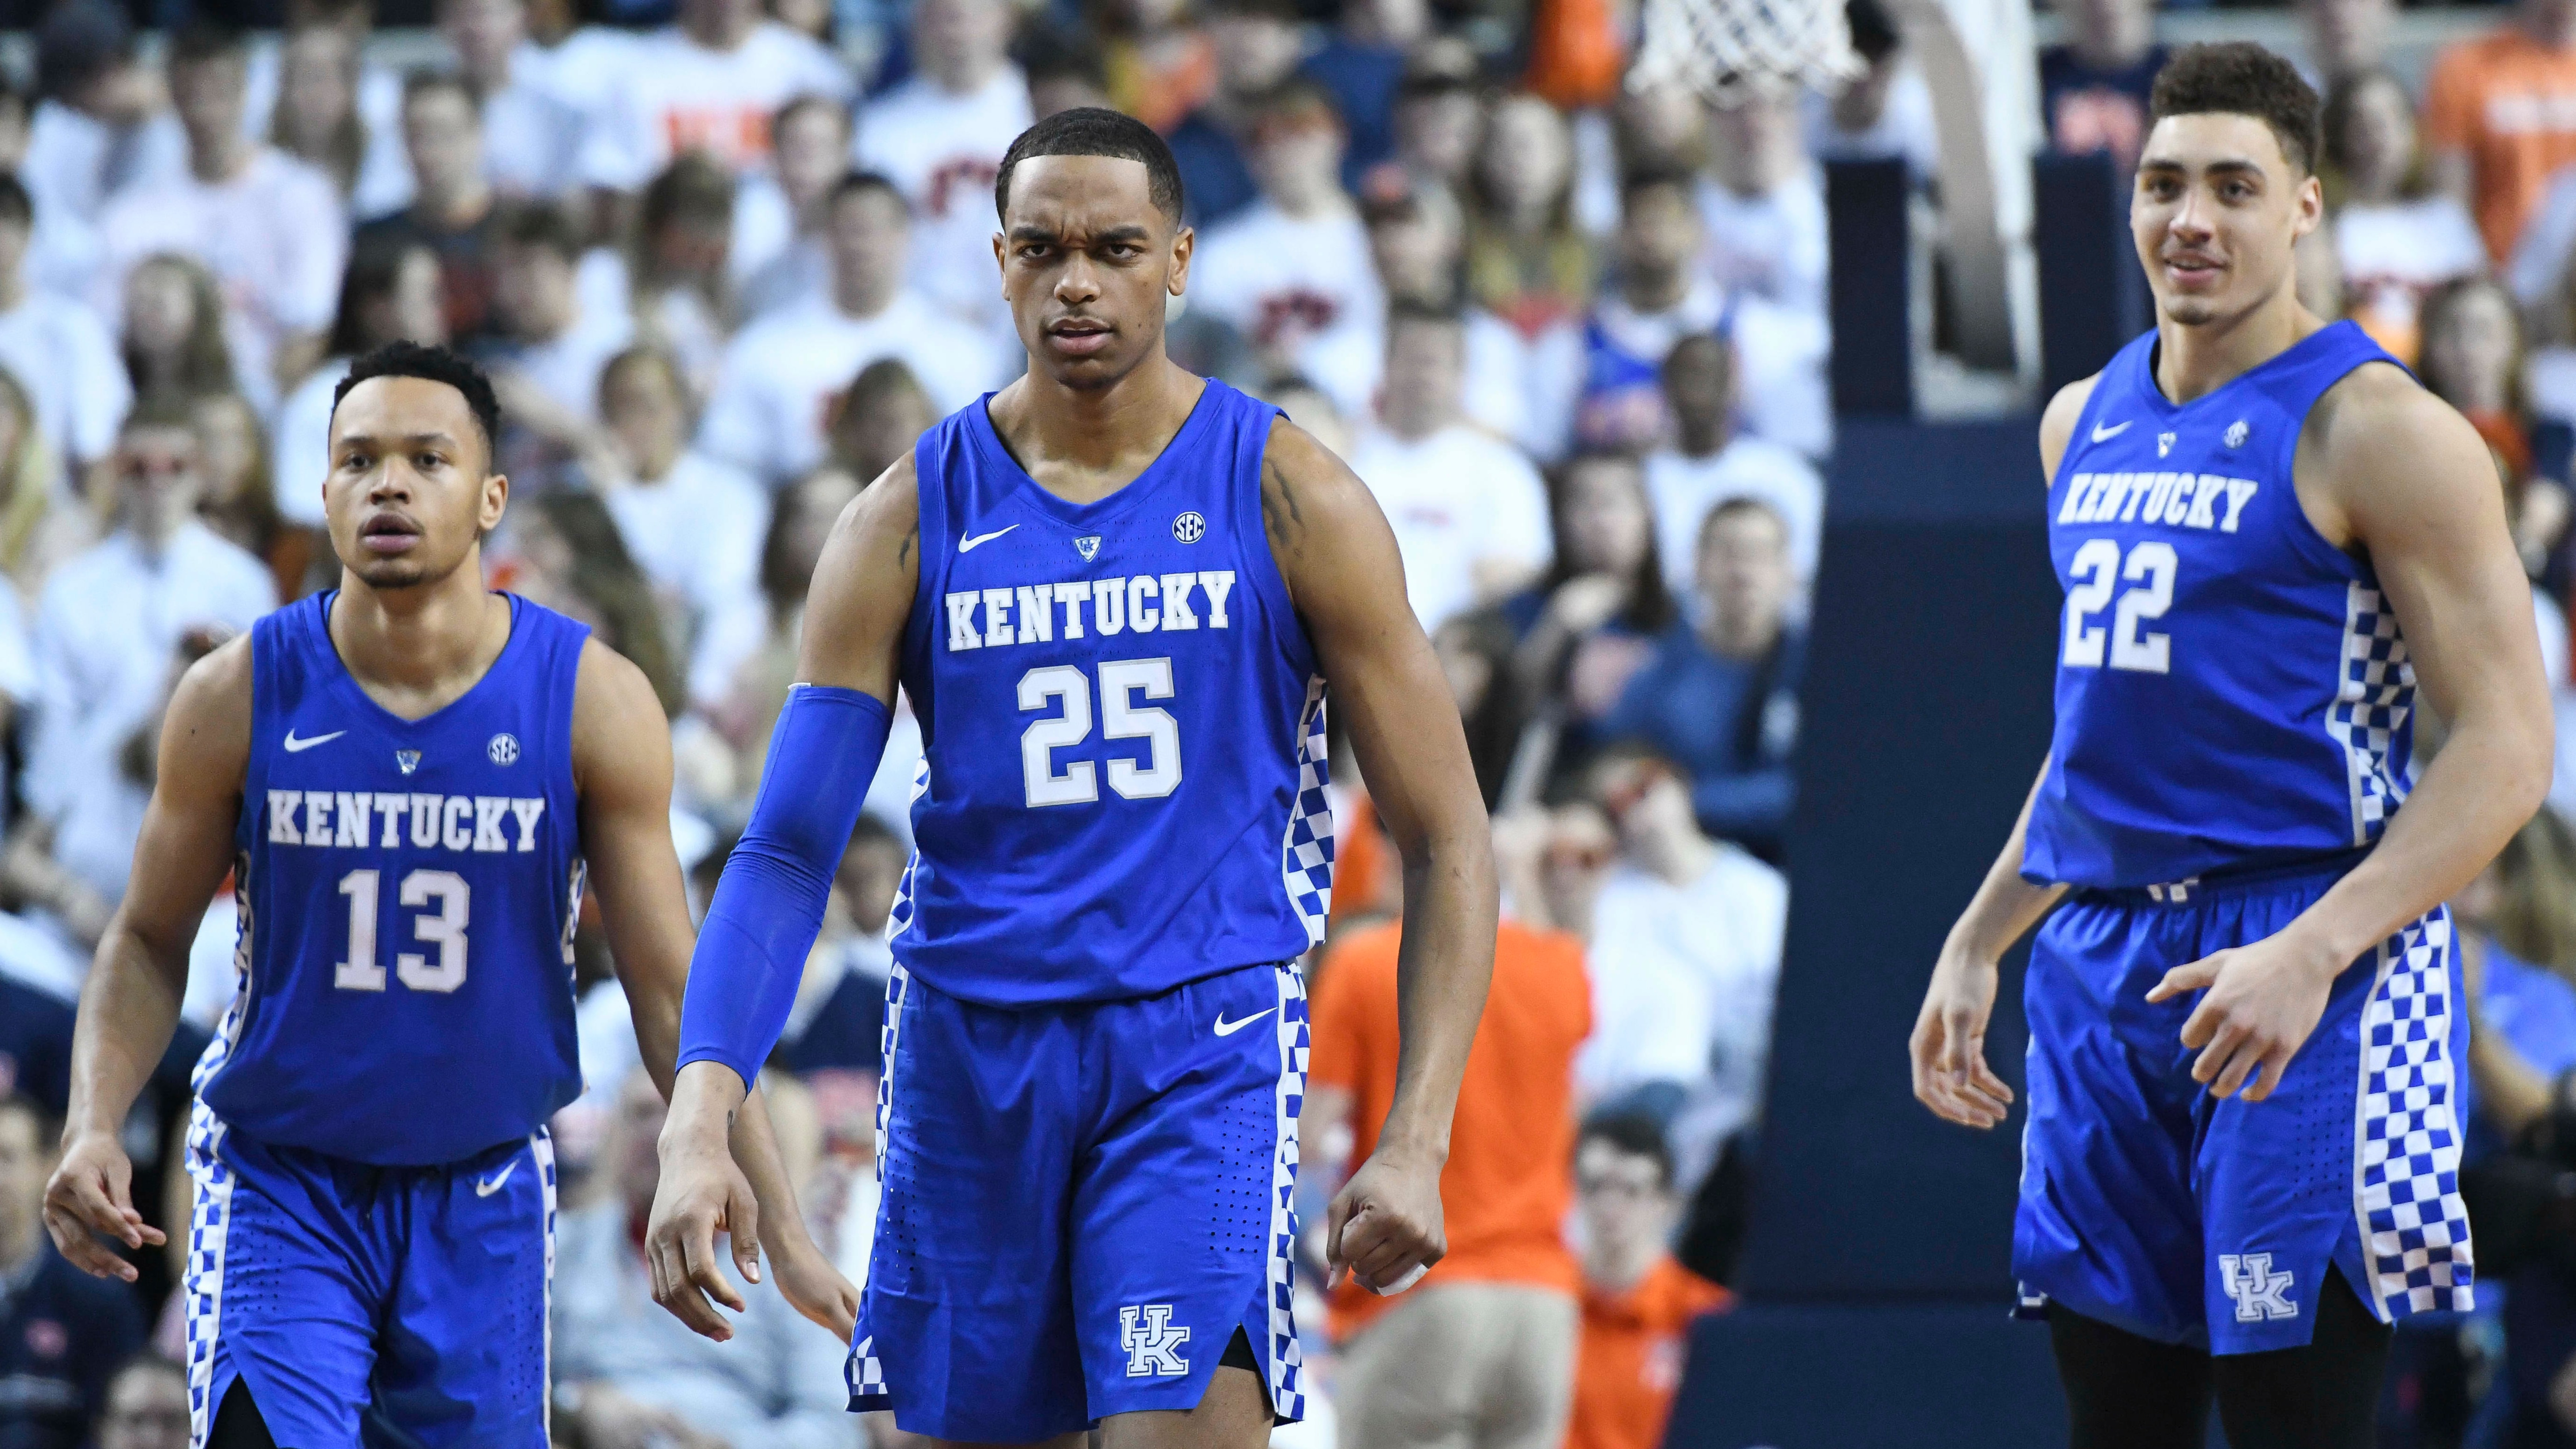 Ncaa betting trends basketball quotes best sports betting lines appearing